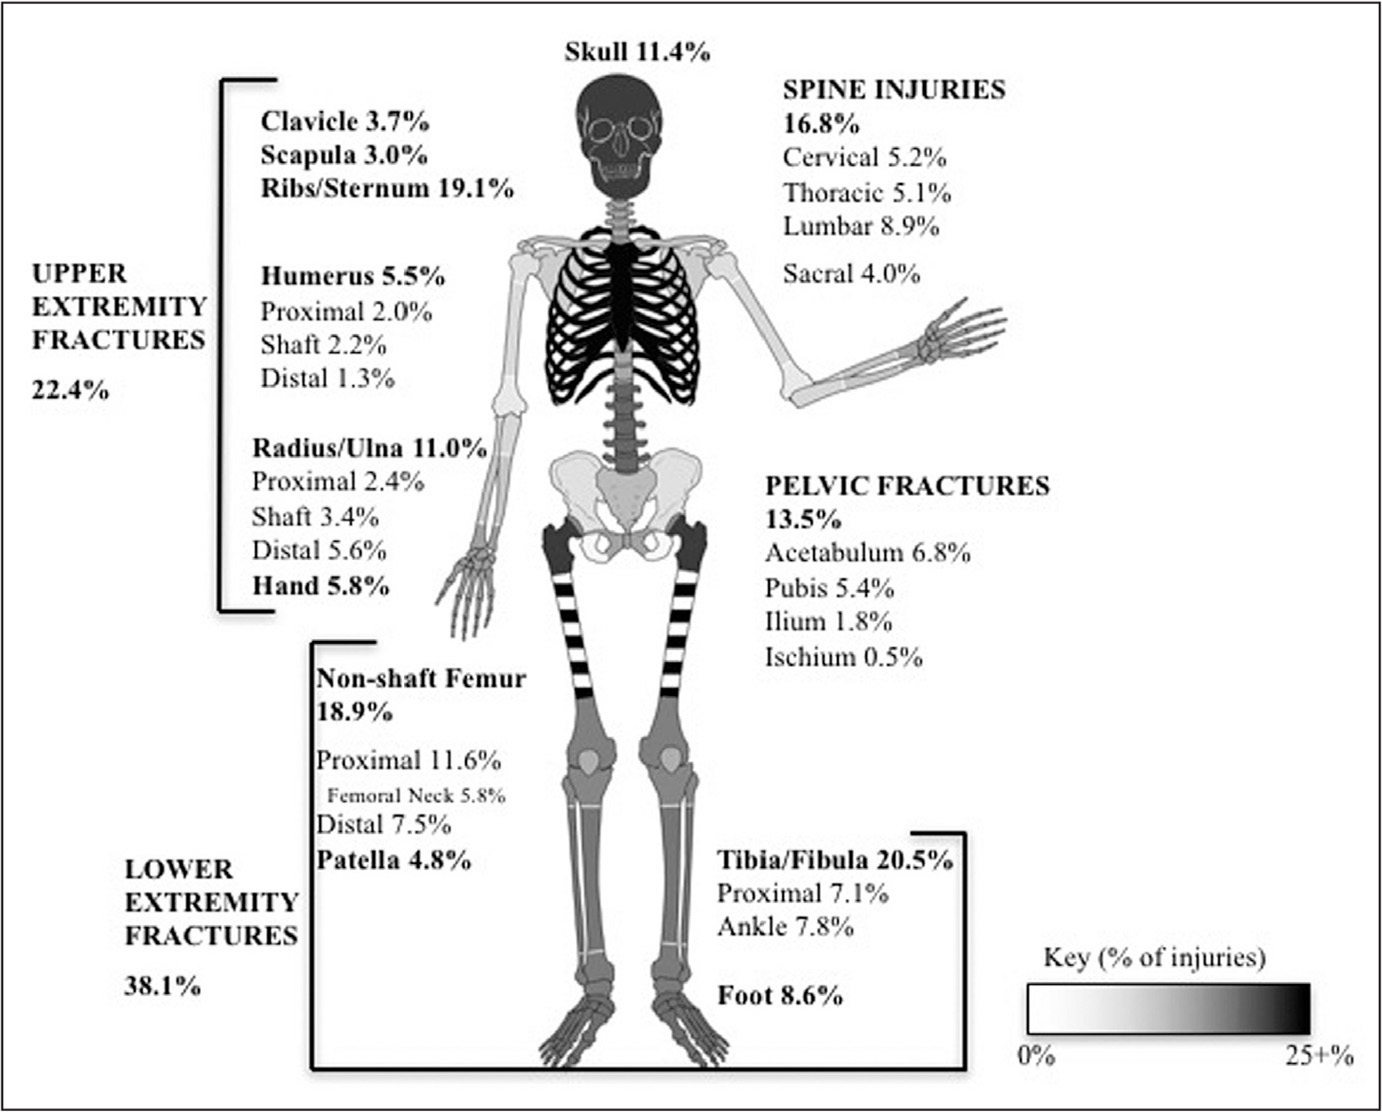 Schematic representation of percentages of adult patients (18 years and older) with a femoral shaft fracture with an incidence of associated bony injuries in different regions of the skeleton. Darker shadings in gray scale correspond with higher frequencies of associated injuries.